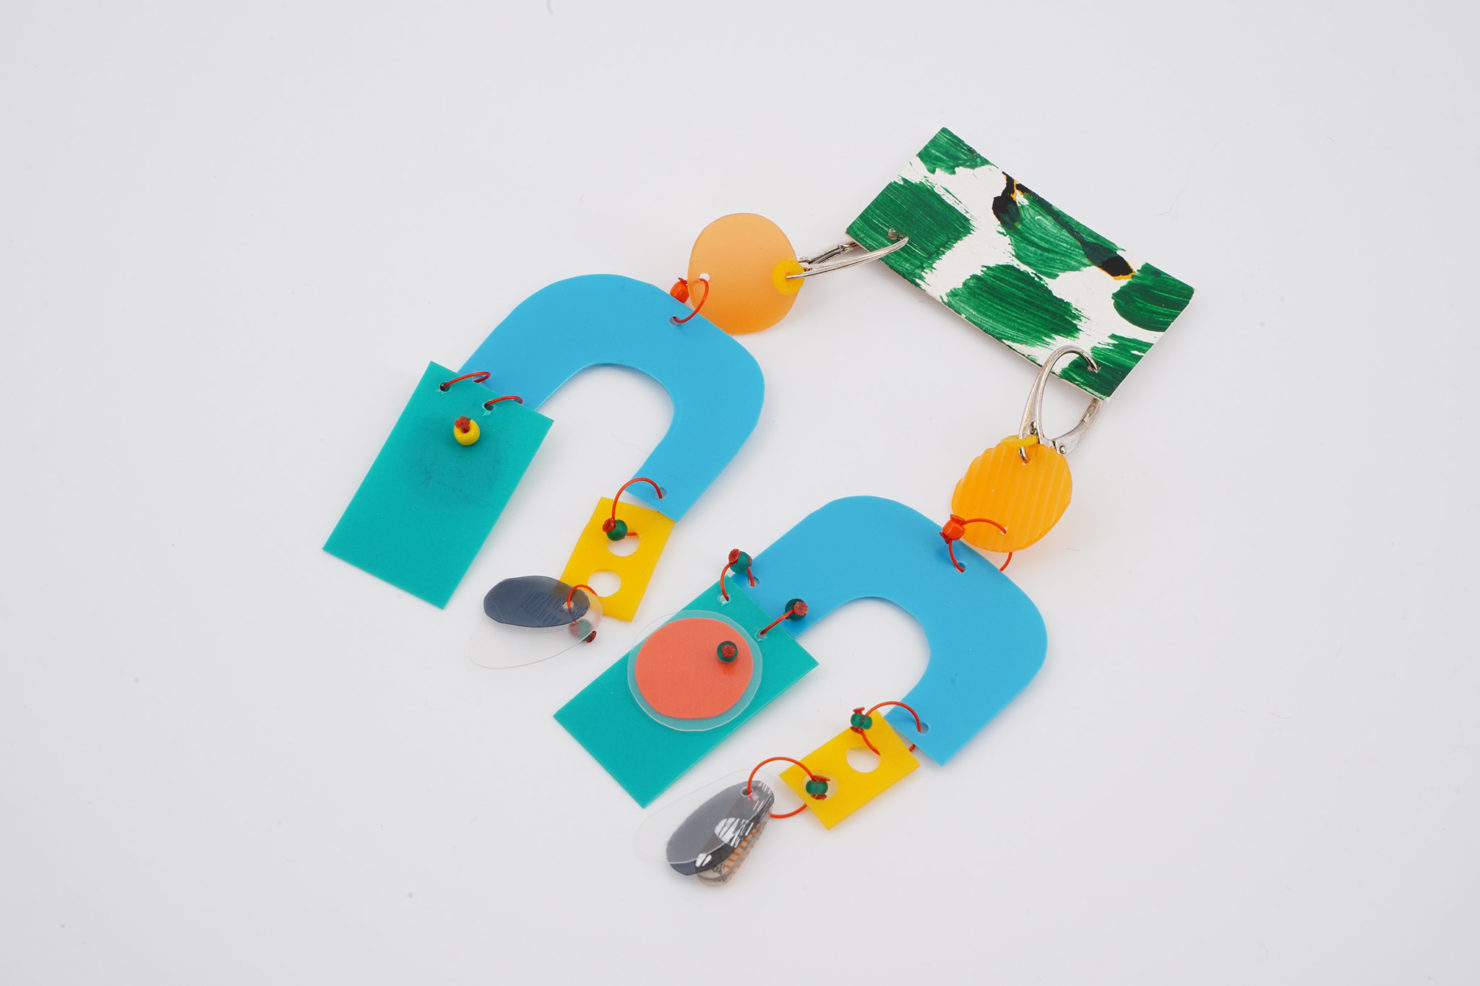 HANDMADE EARRINGS WITH CUTTED RECYCLED PLASTIC-CARRY ON